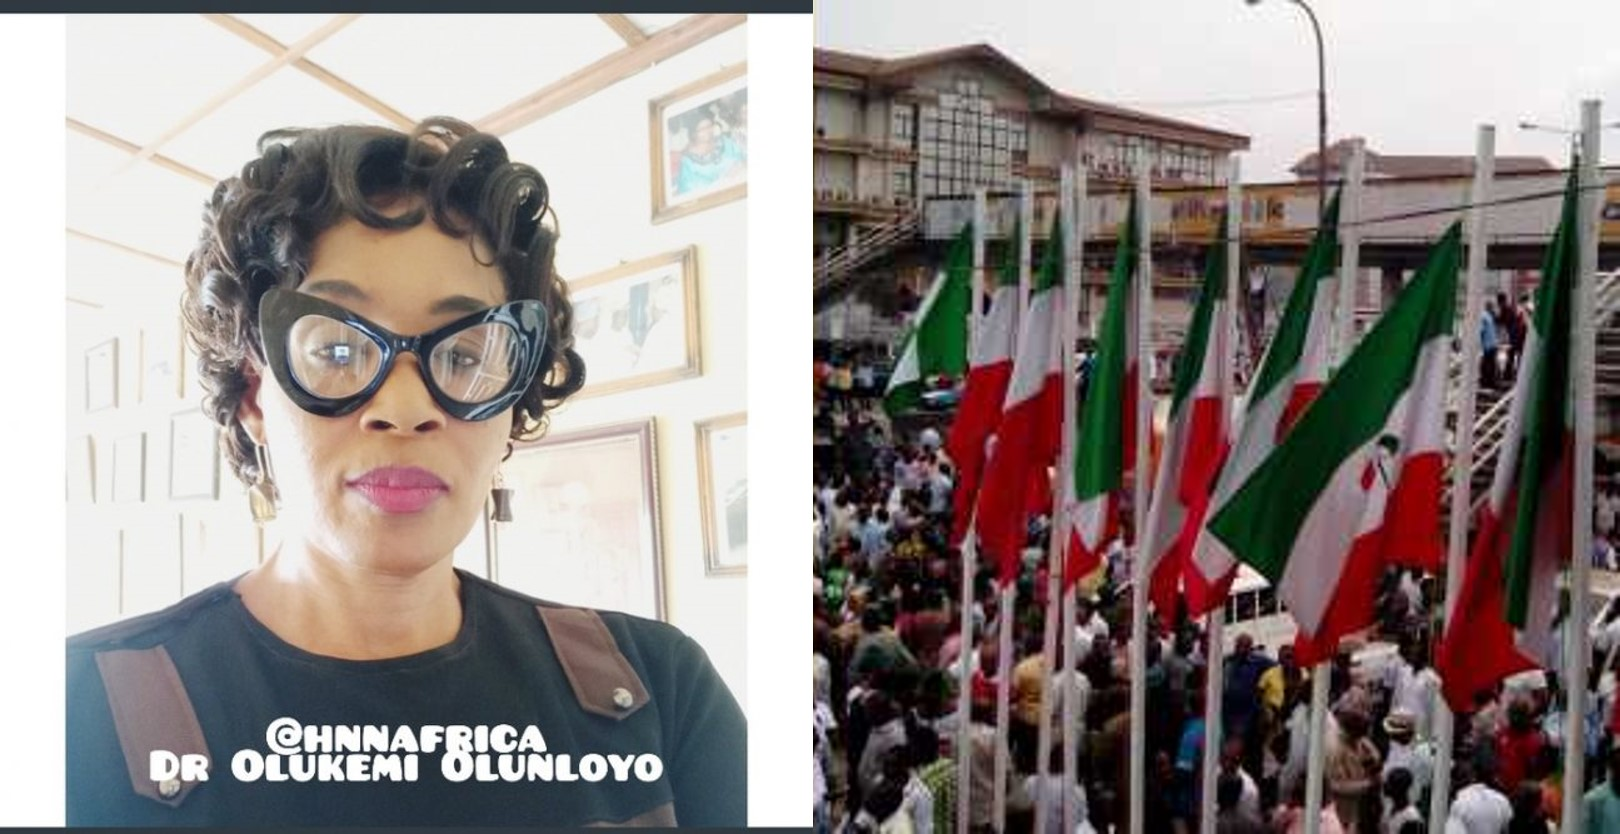 'Remember your daughters, PDP politicians are transporting UNIPORT girls to hotels' – Kemi Olunloyo